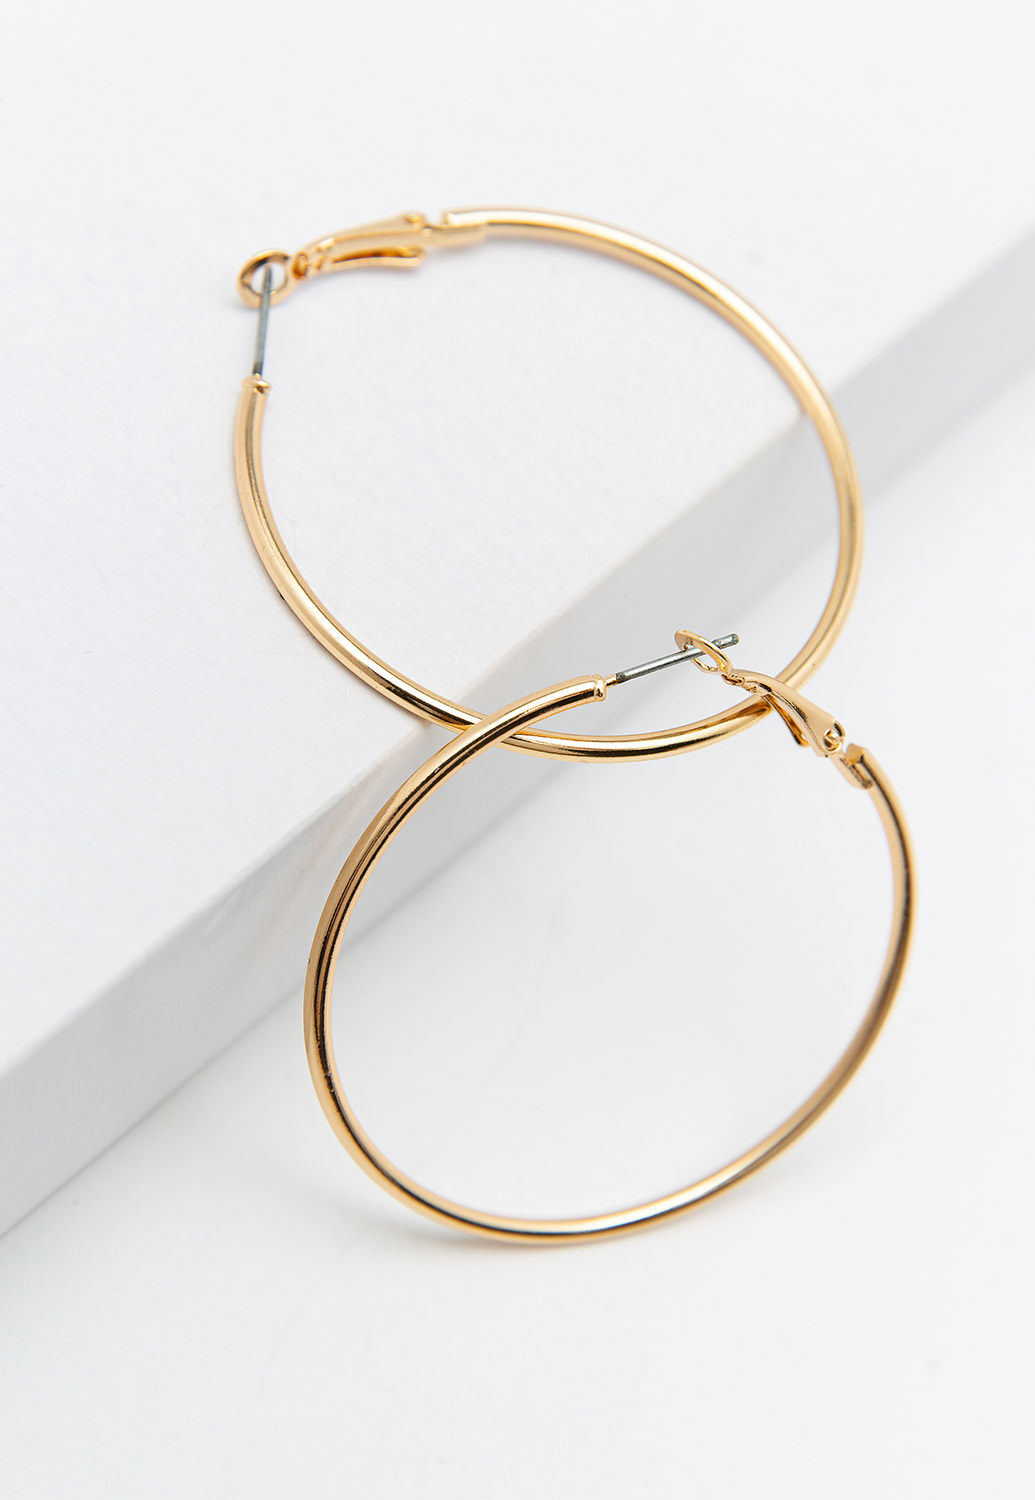 50MM Gold Hoop Earrings